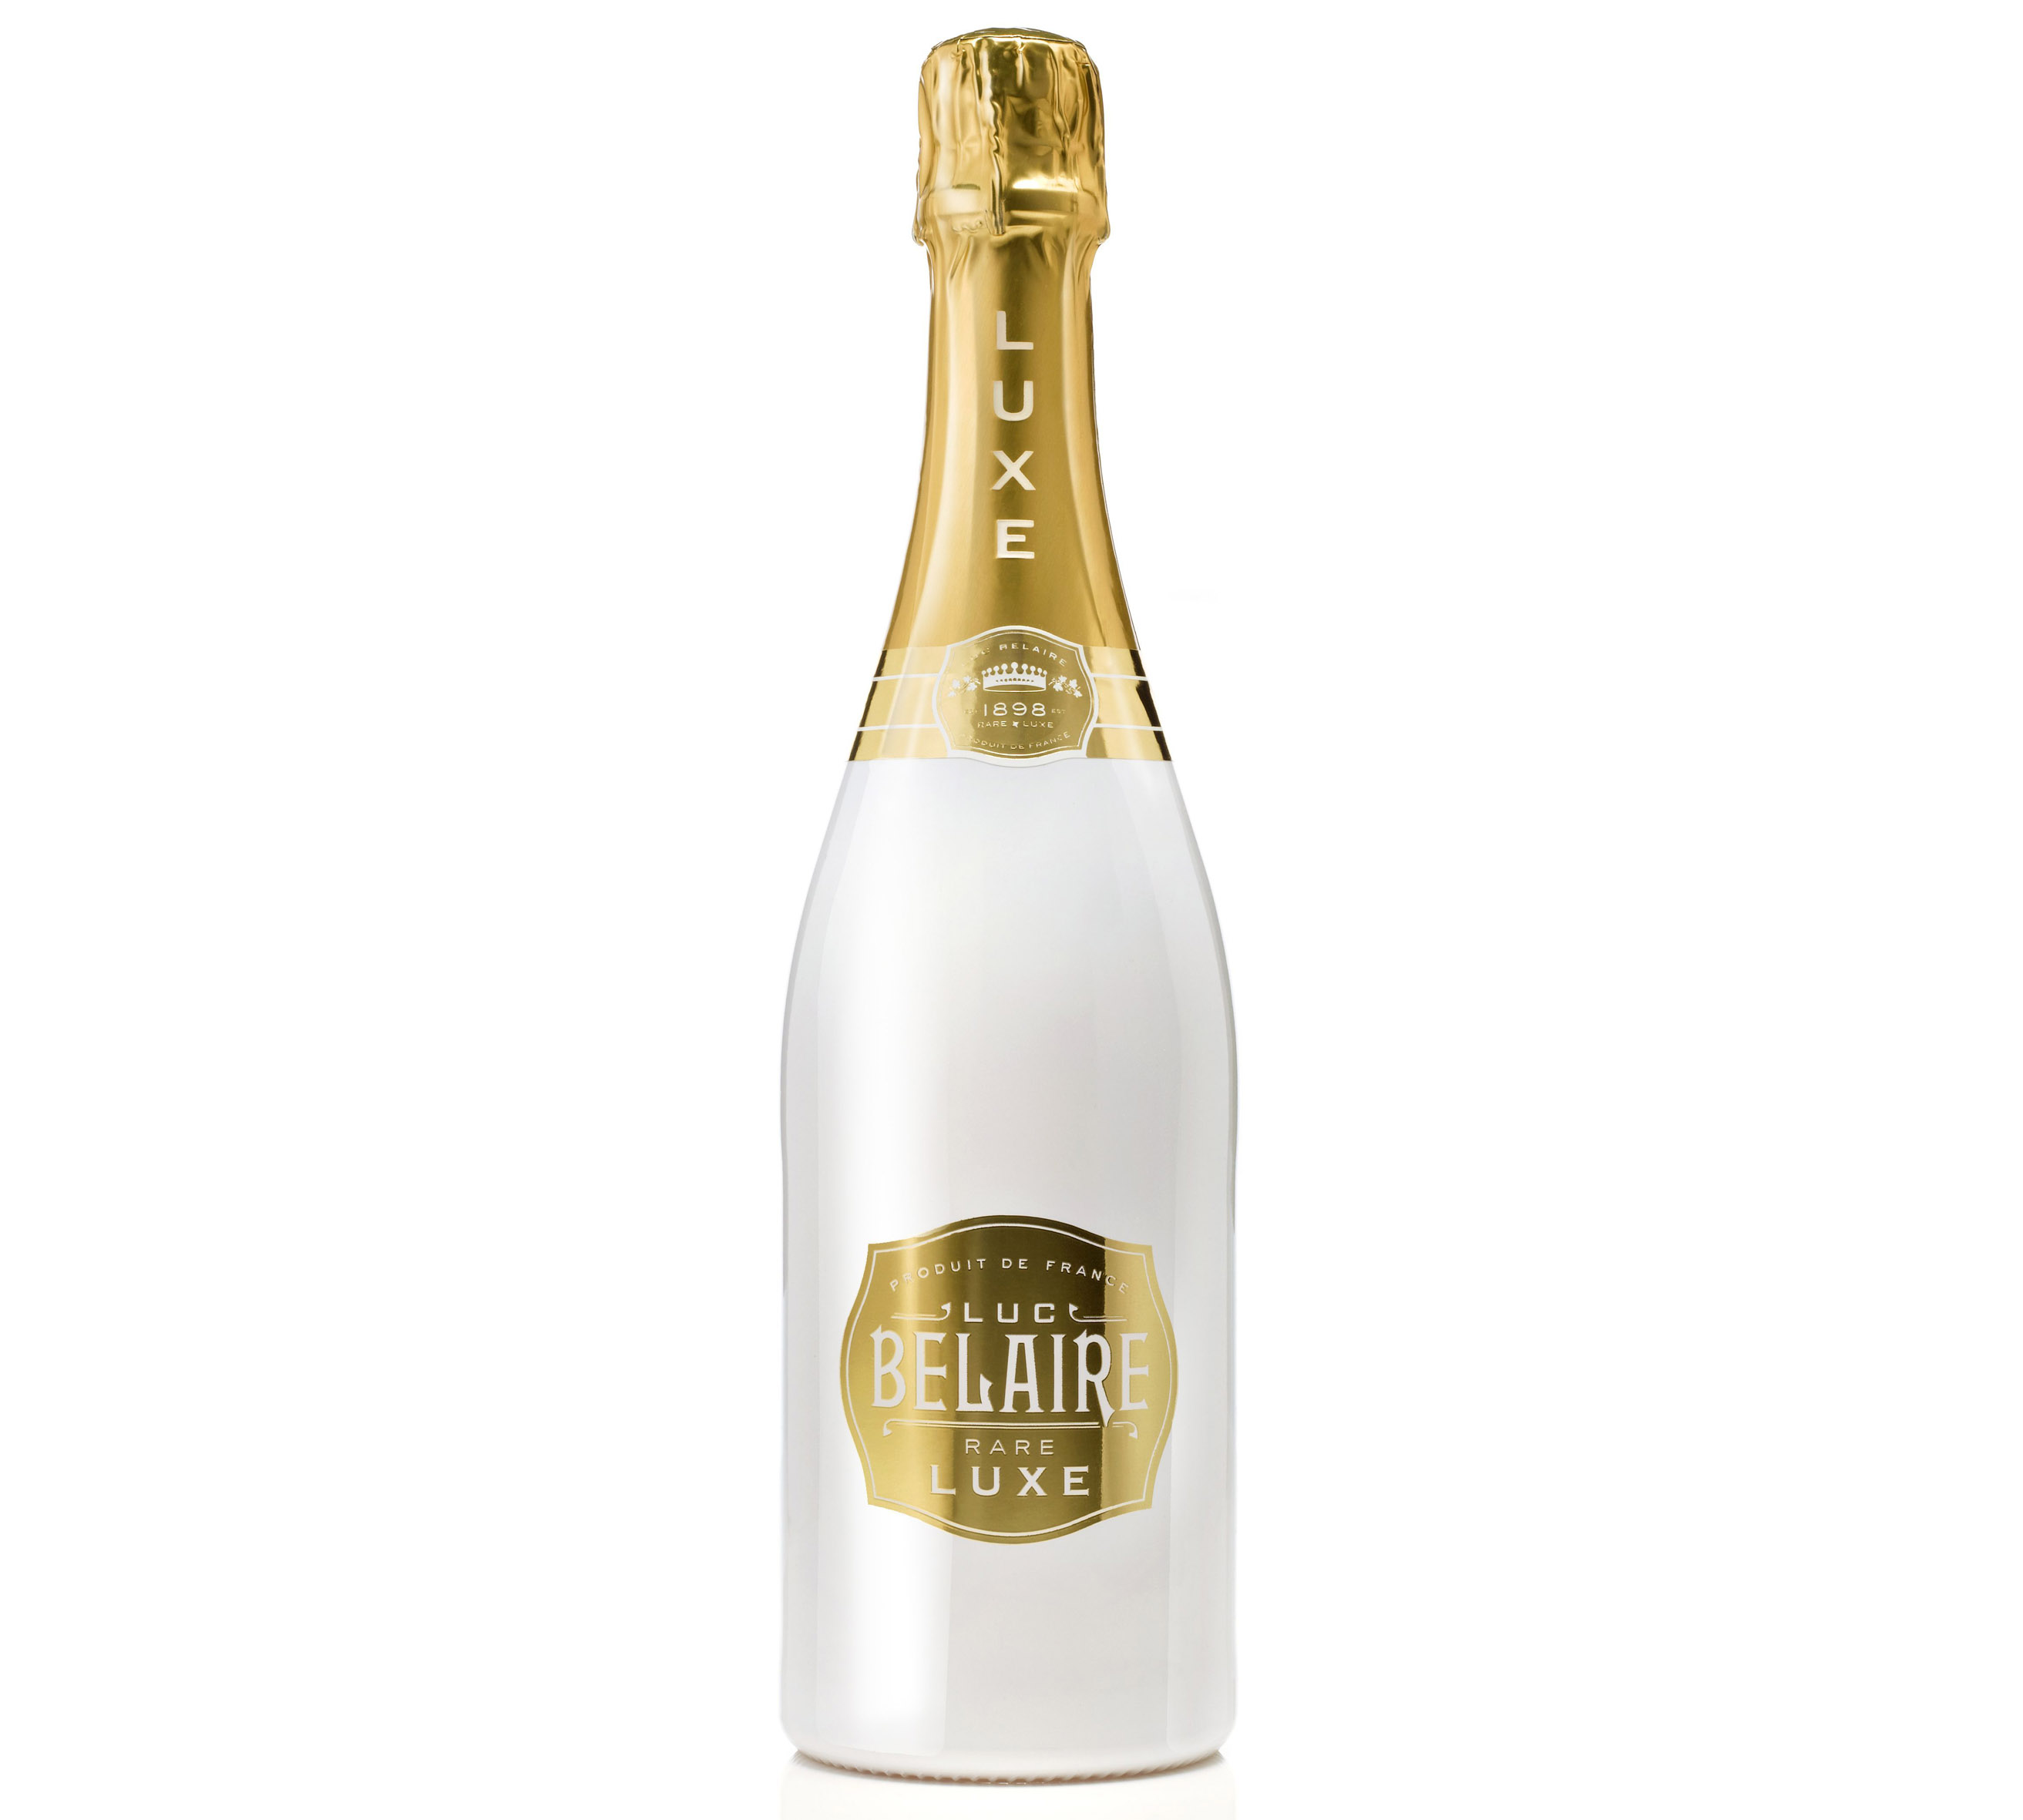 Luc Belaire Luxe, Blancs de Blancs Sparkling Wine, France, available from 31dover.com.